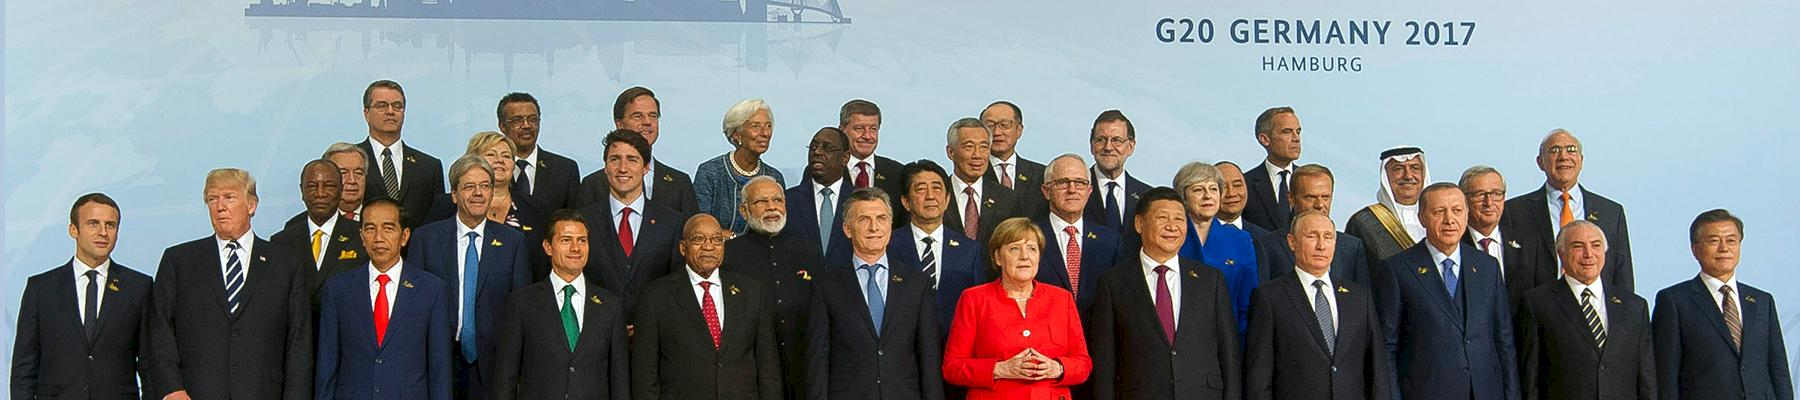 Heads of States and Government during a family photo at the G20 Leaders summit in Hamburg, Germany © GCIS / CC 2.0